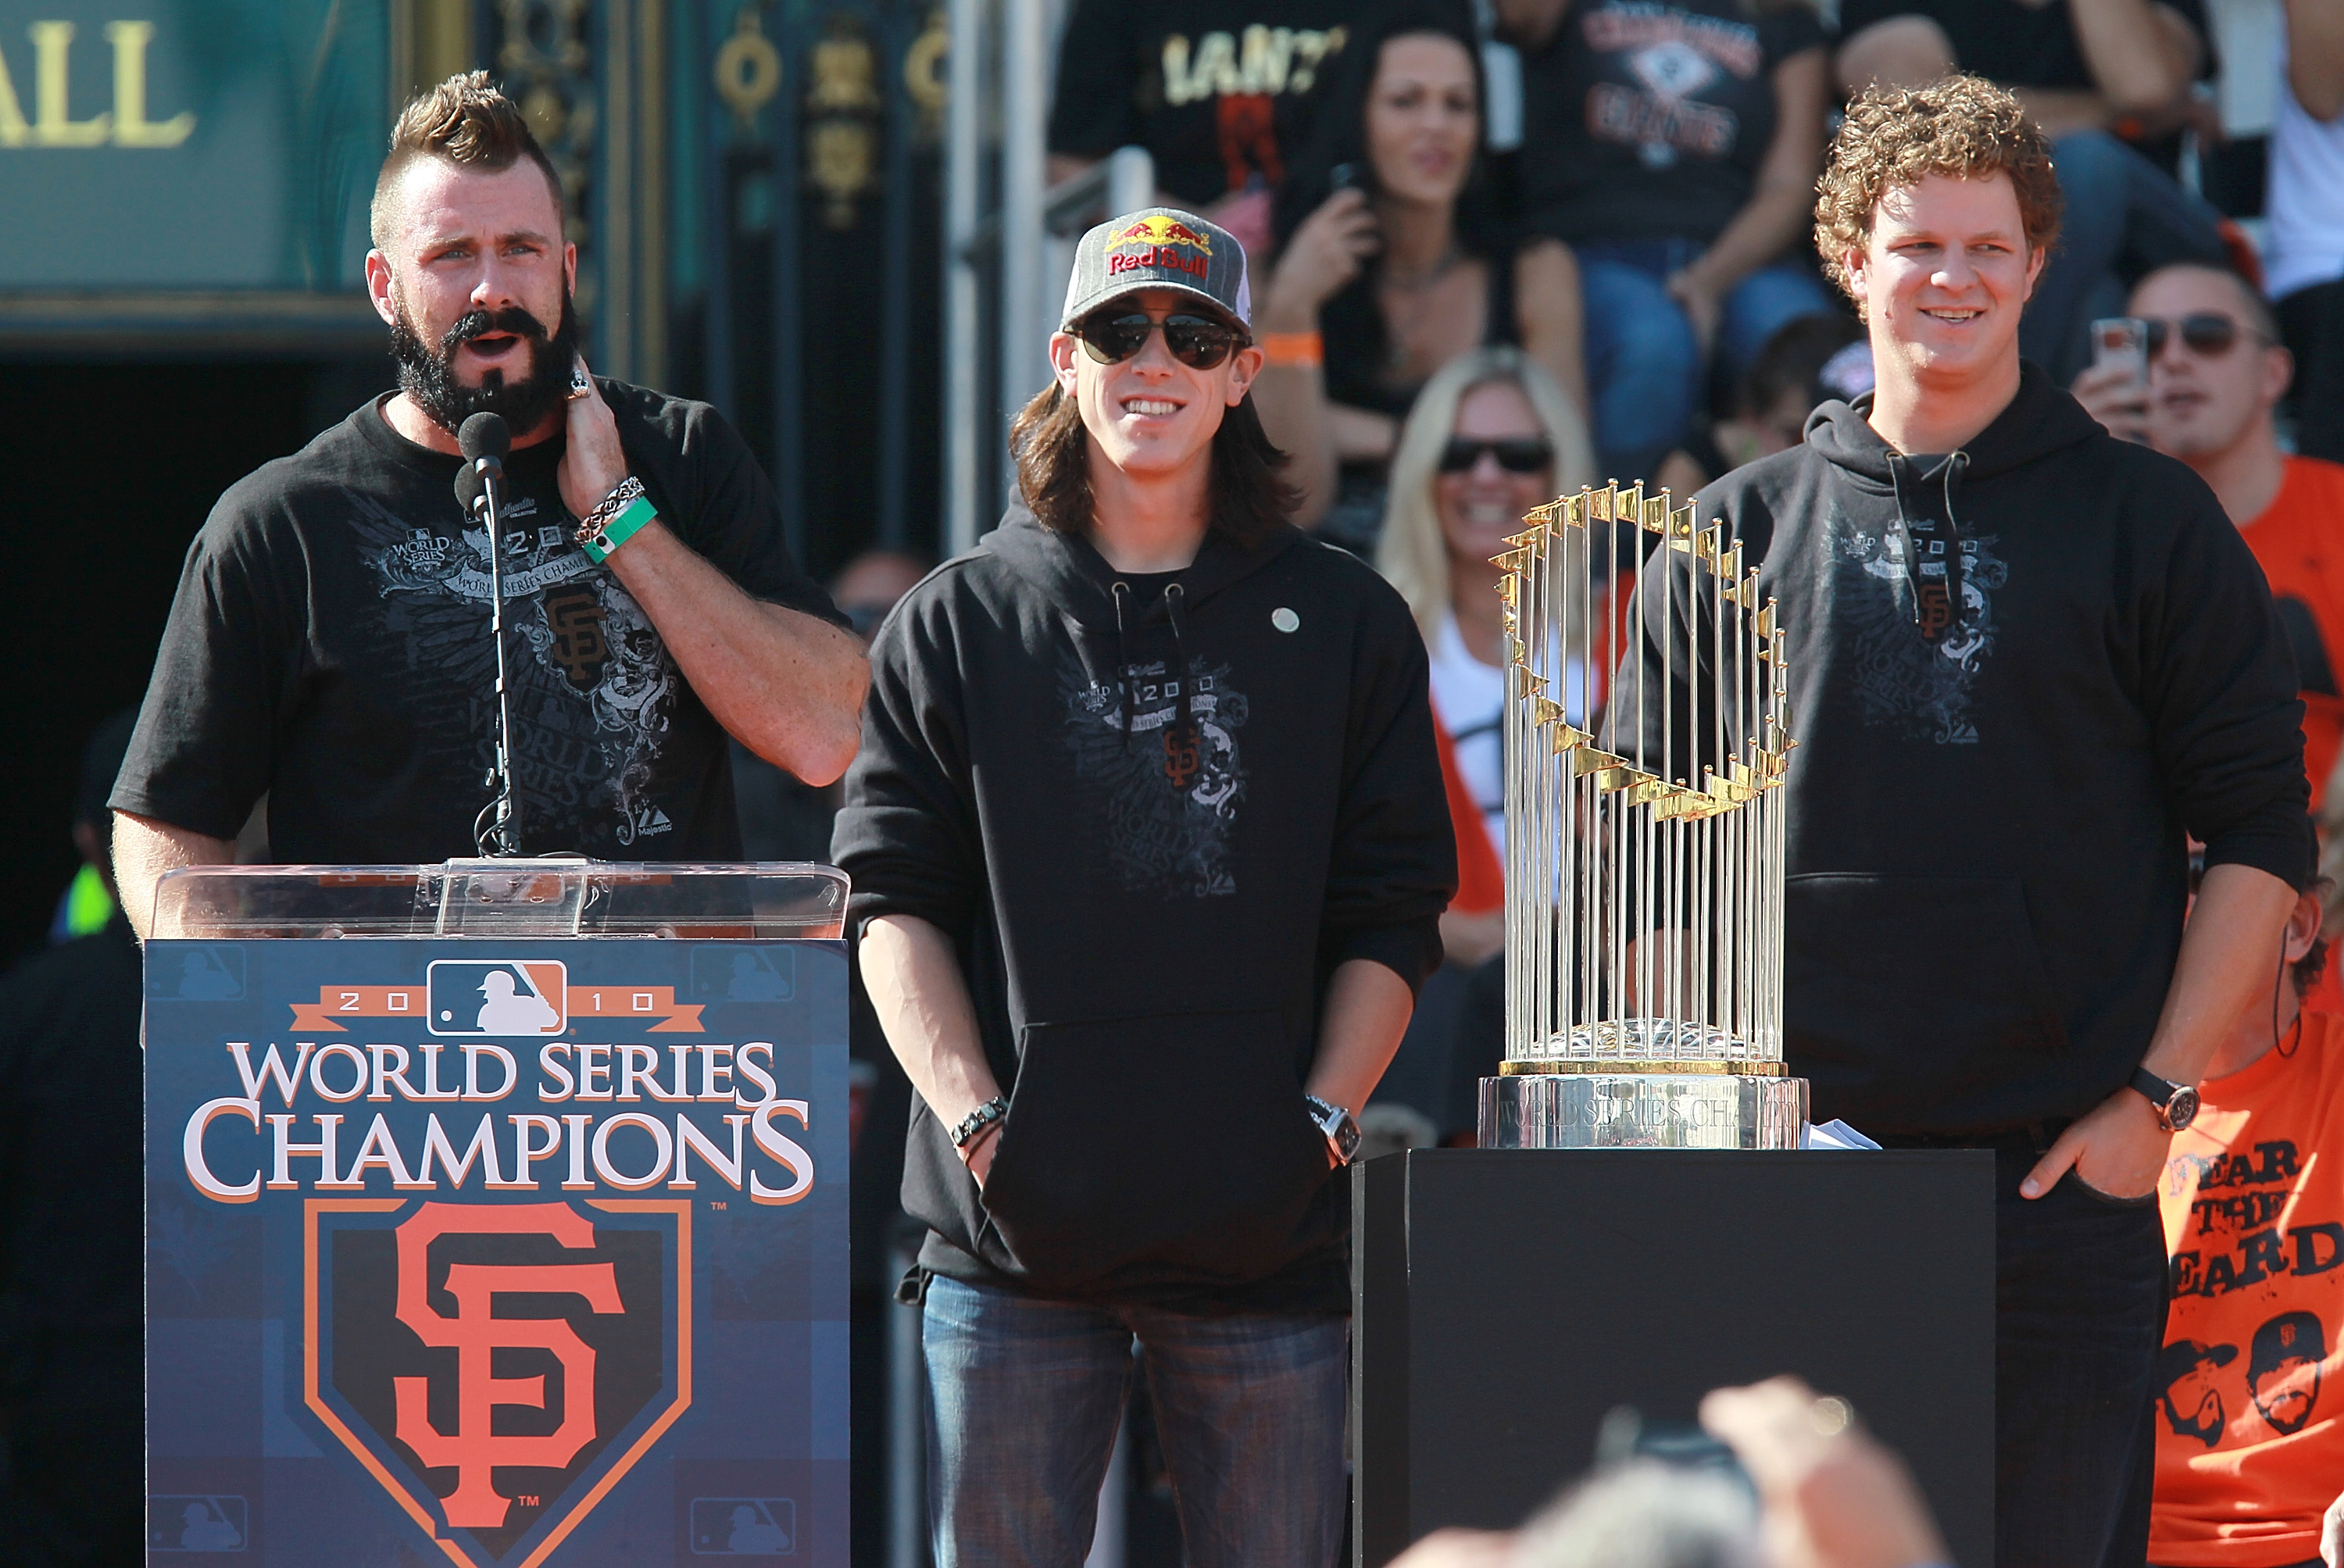 SAN FRANCISCO - NOVEMBER 03:  (L-R) San Francisco Giants pitchers Brian Wilson, Tim Lincecum and Matt Cain speak to fans outside San Francisco city hall during the Giants' victory parade and celebration on November 3, 2010 in San Francisco, California. Th